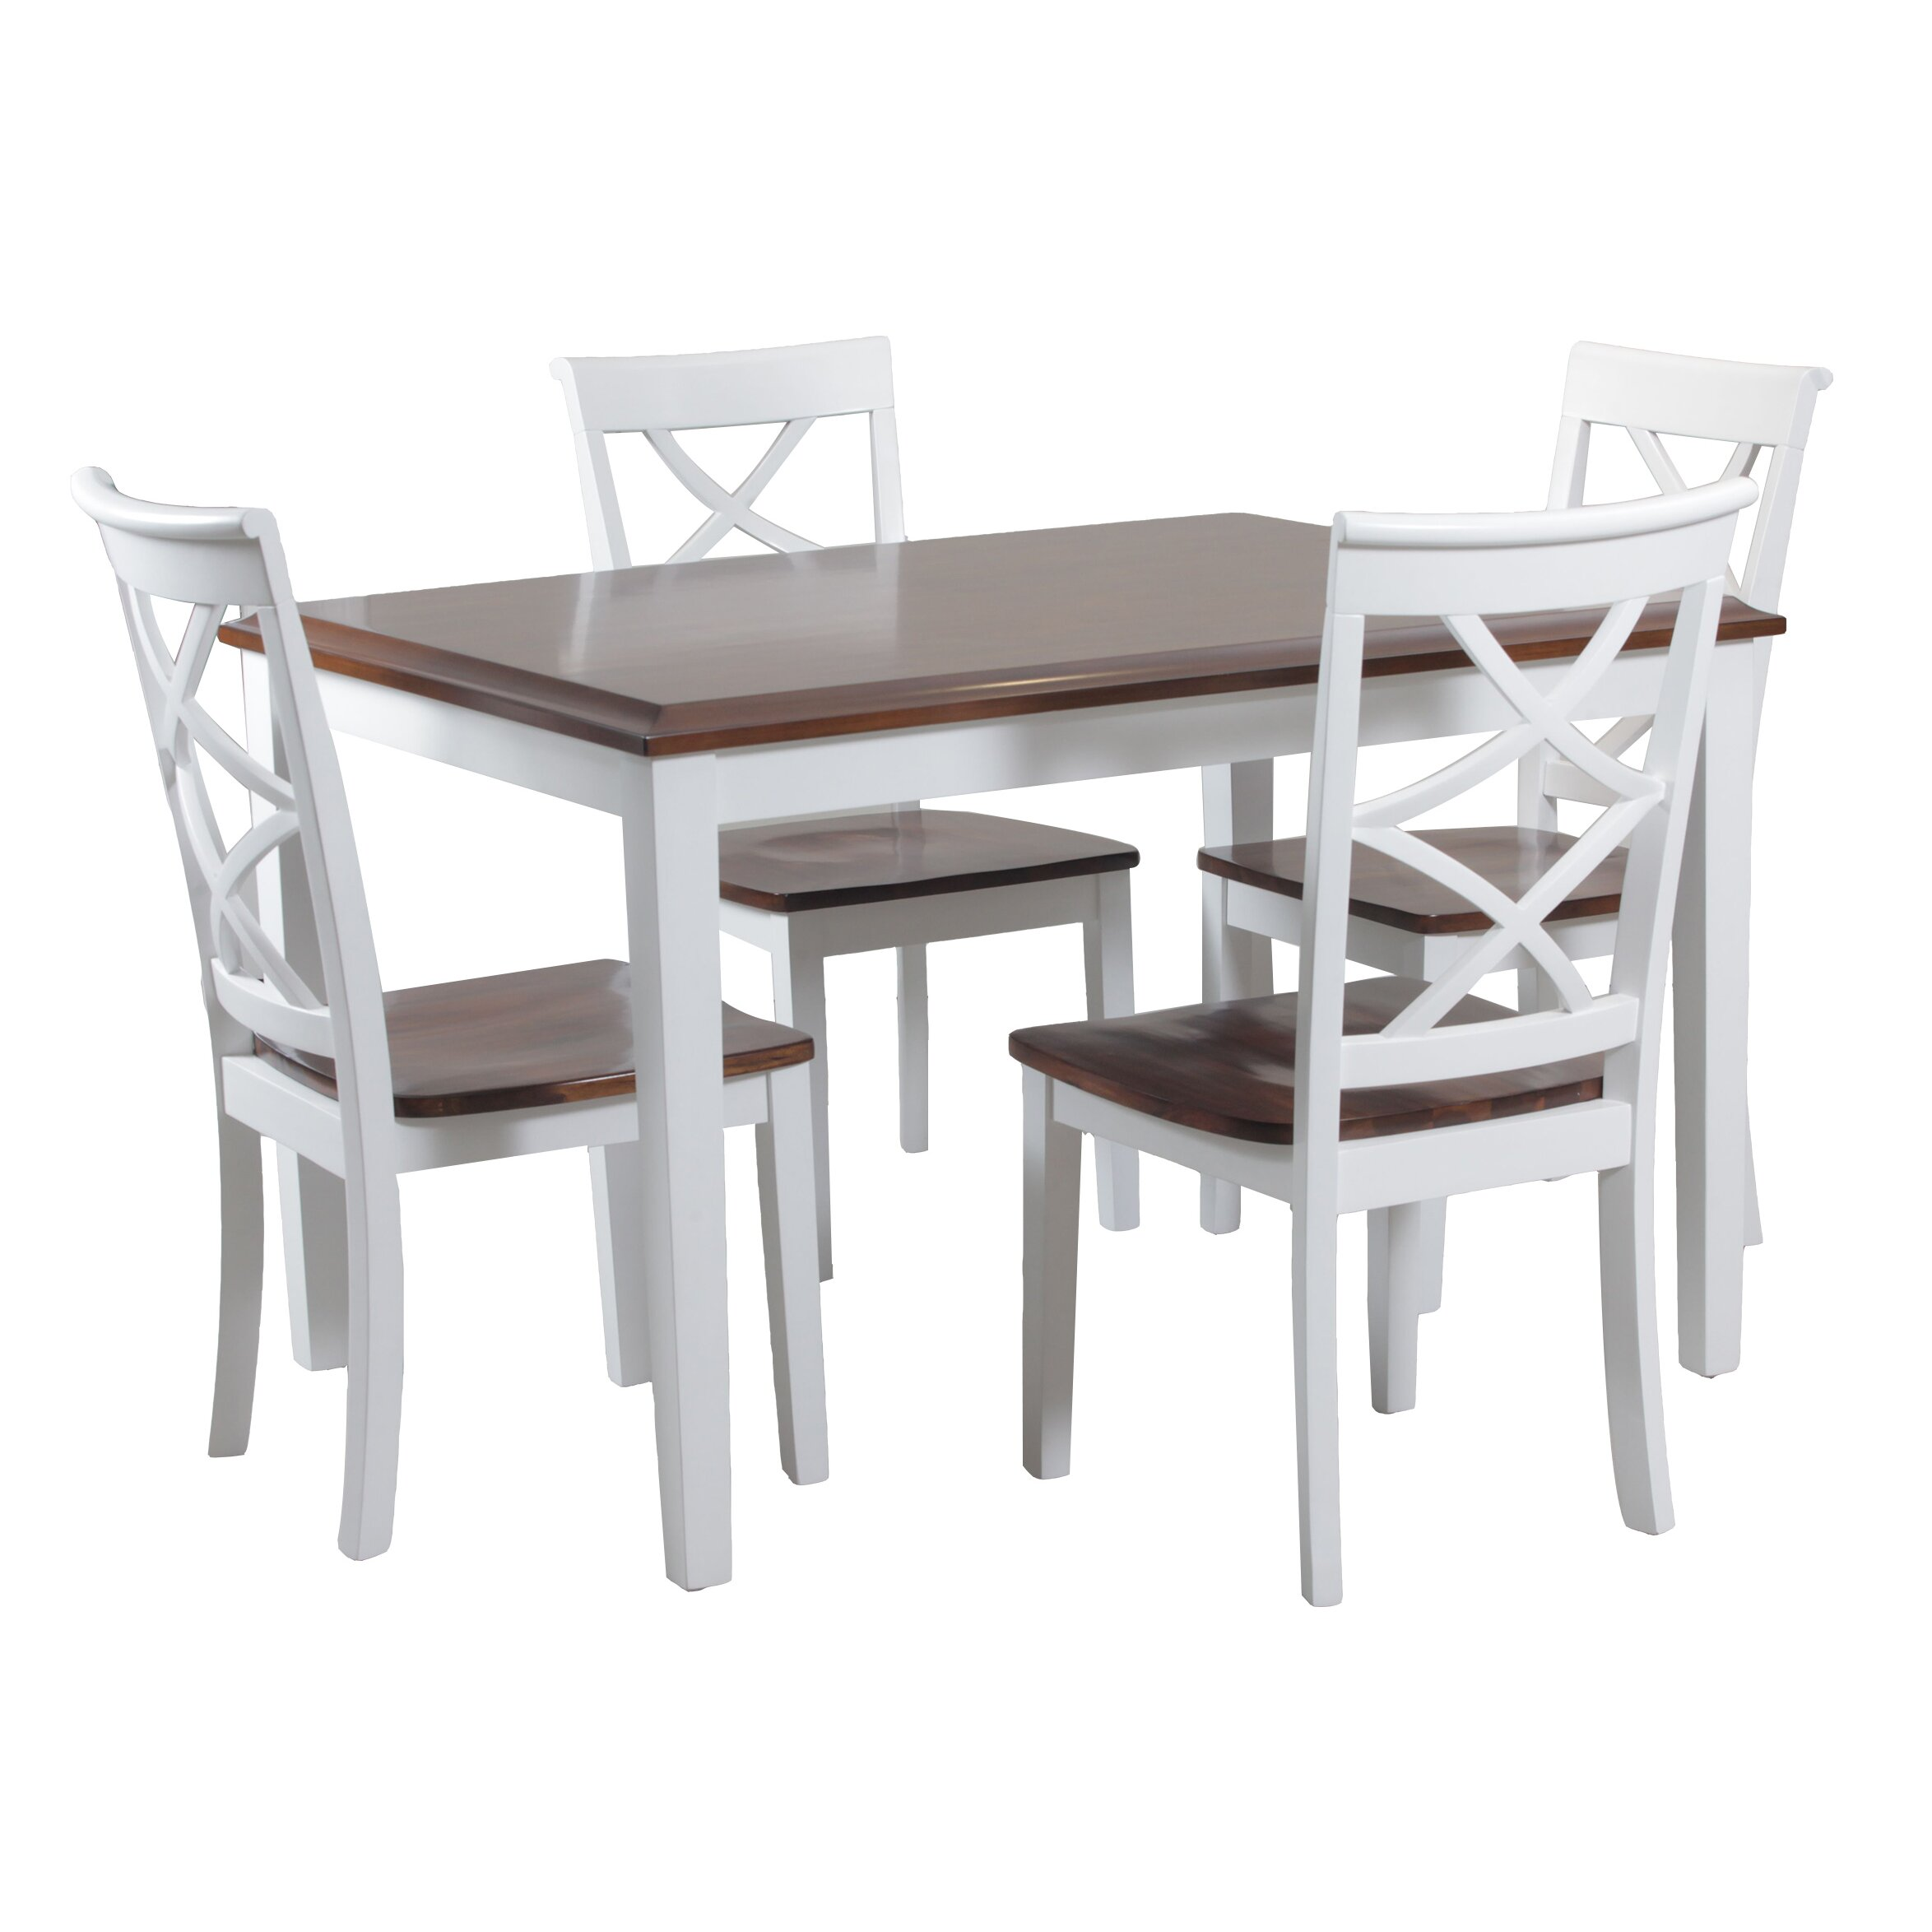 Chairs Brown Furnishings Frederik Piece Dining Set. Content Base.co. Full resolution  portrait, nominally Width 2348 Height 2348 pixels, portrait with #61463C.